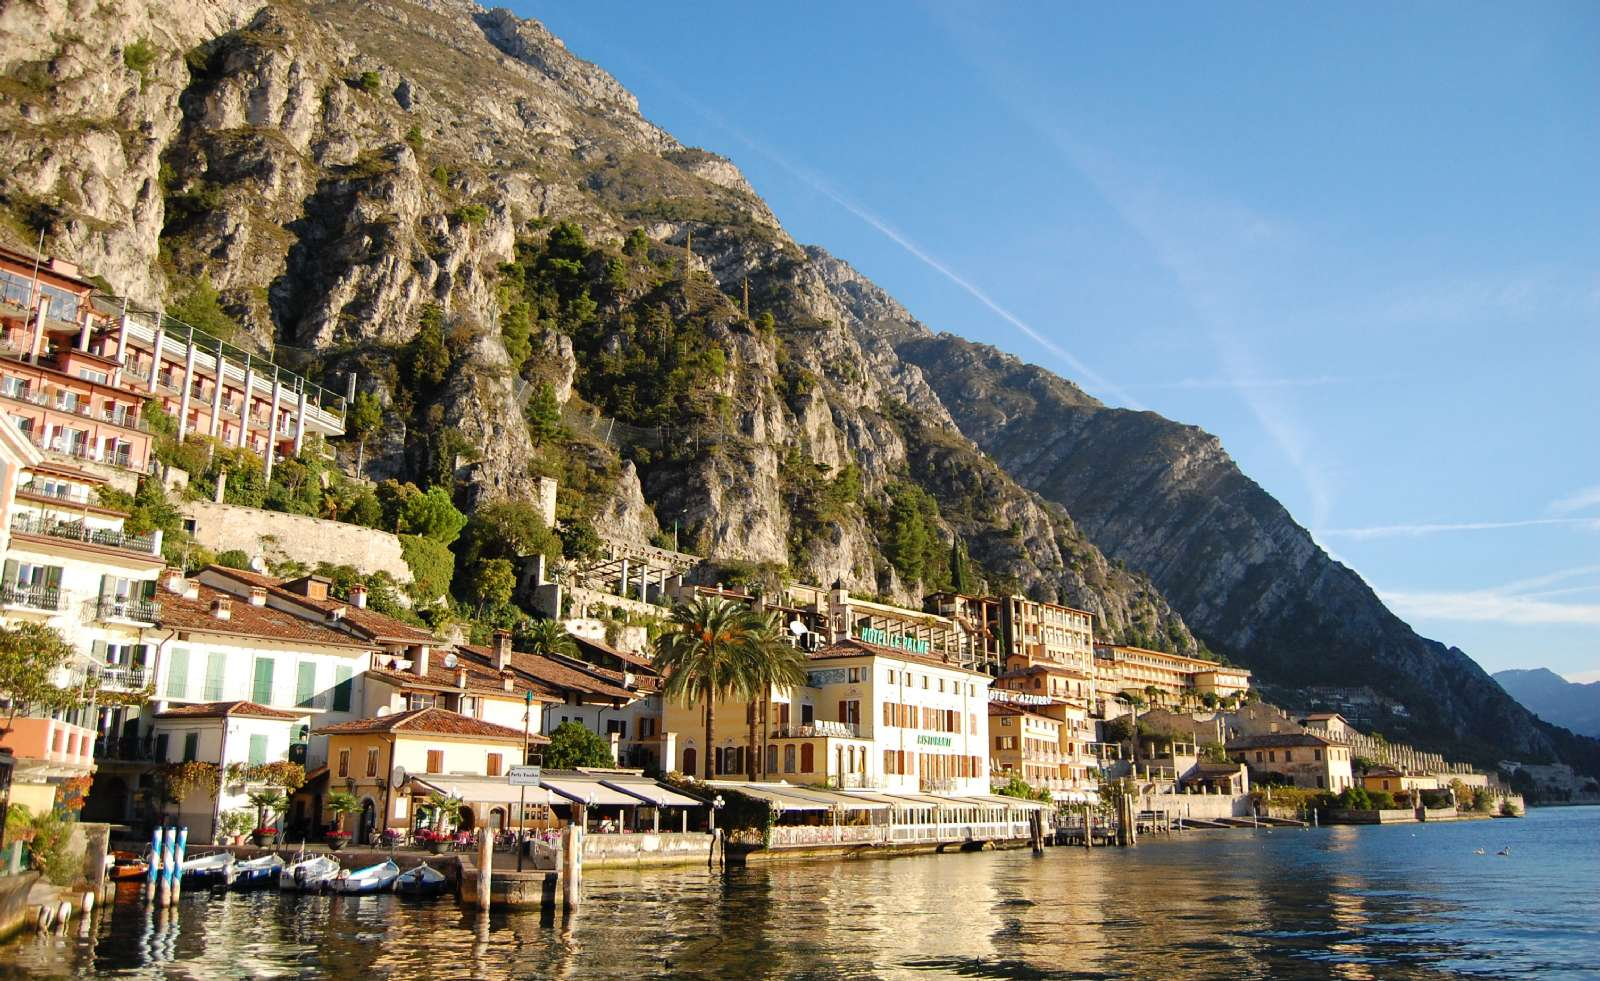 Limone sul Garda in the sunshine on the shores of Lake Garda